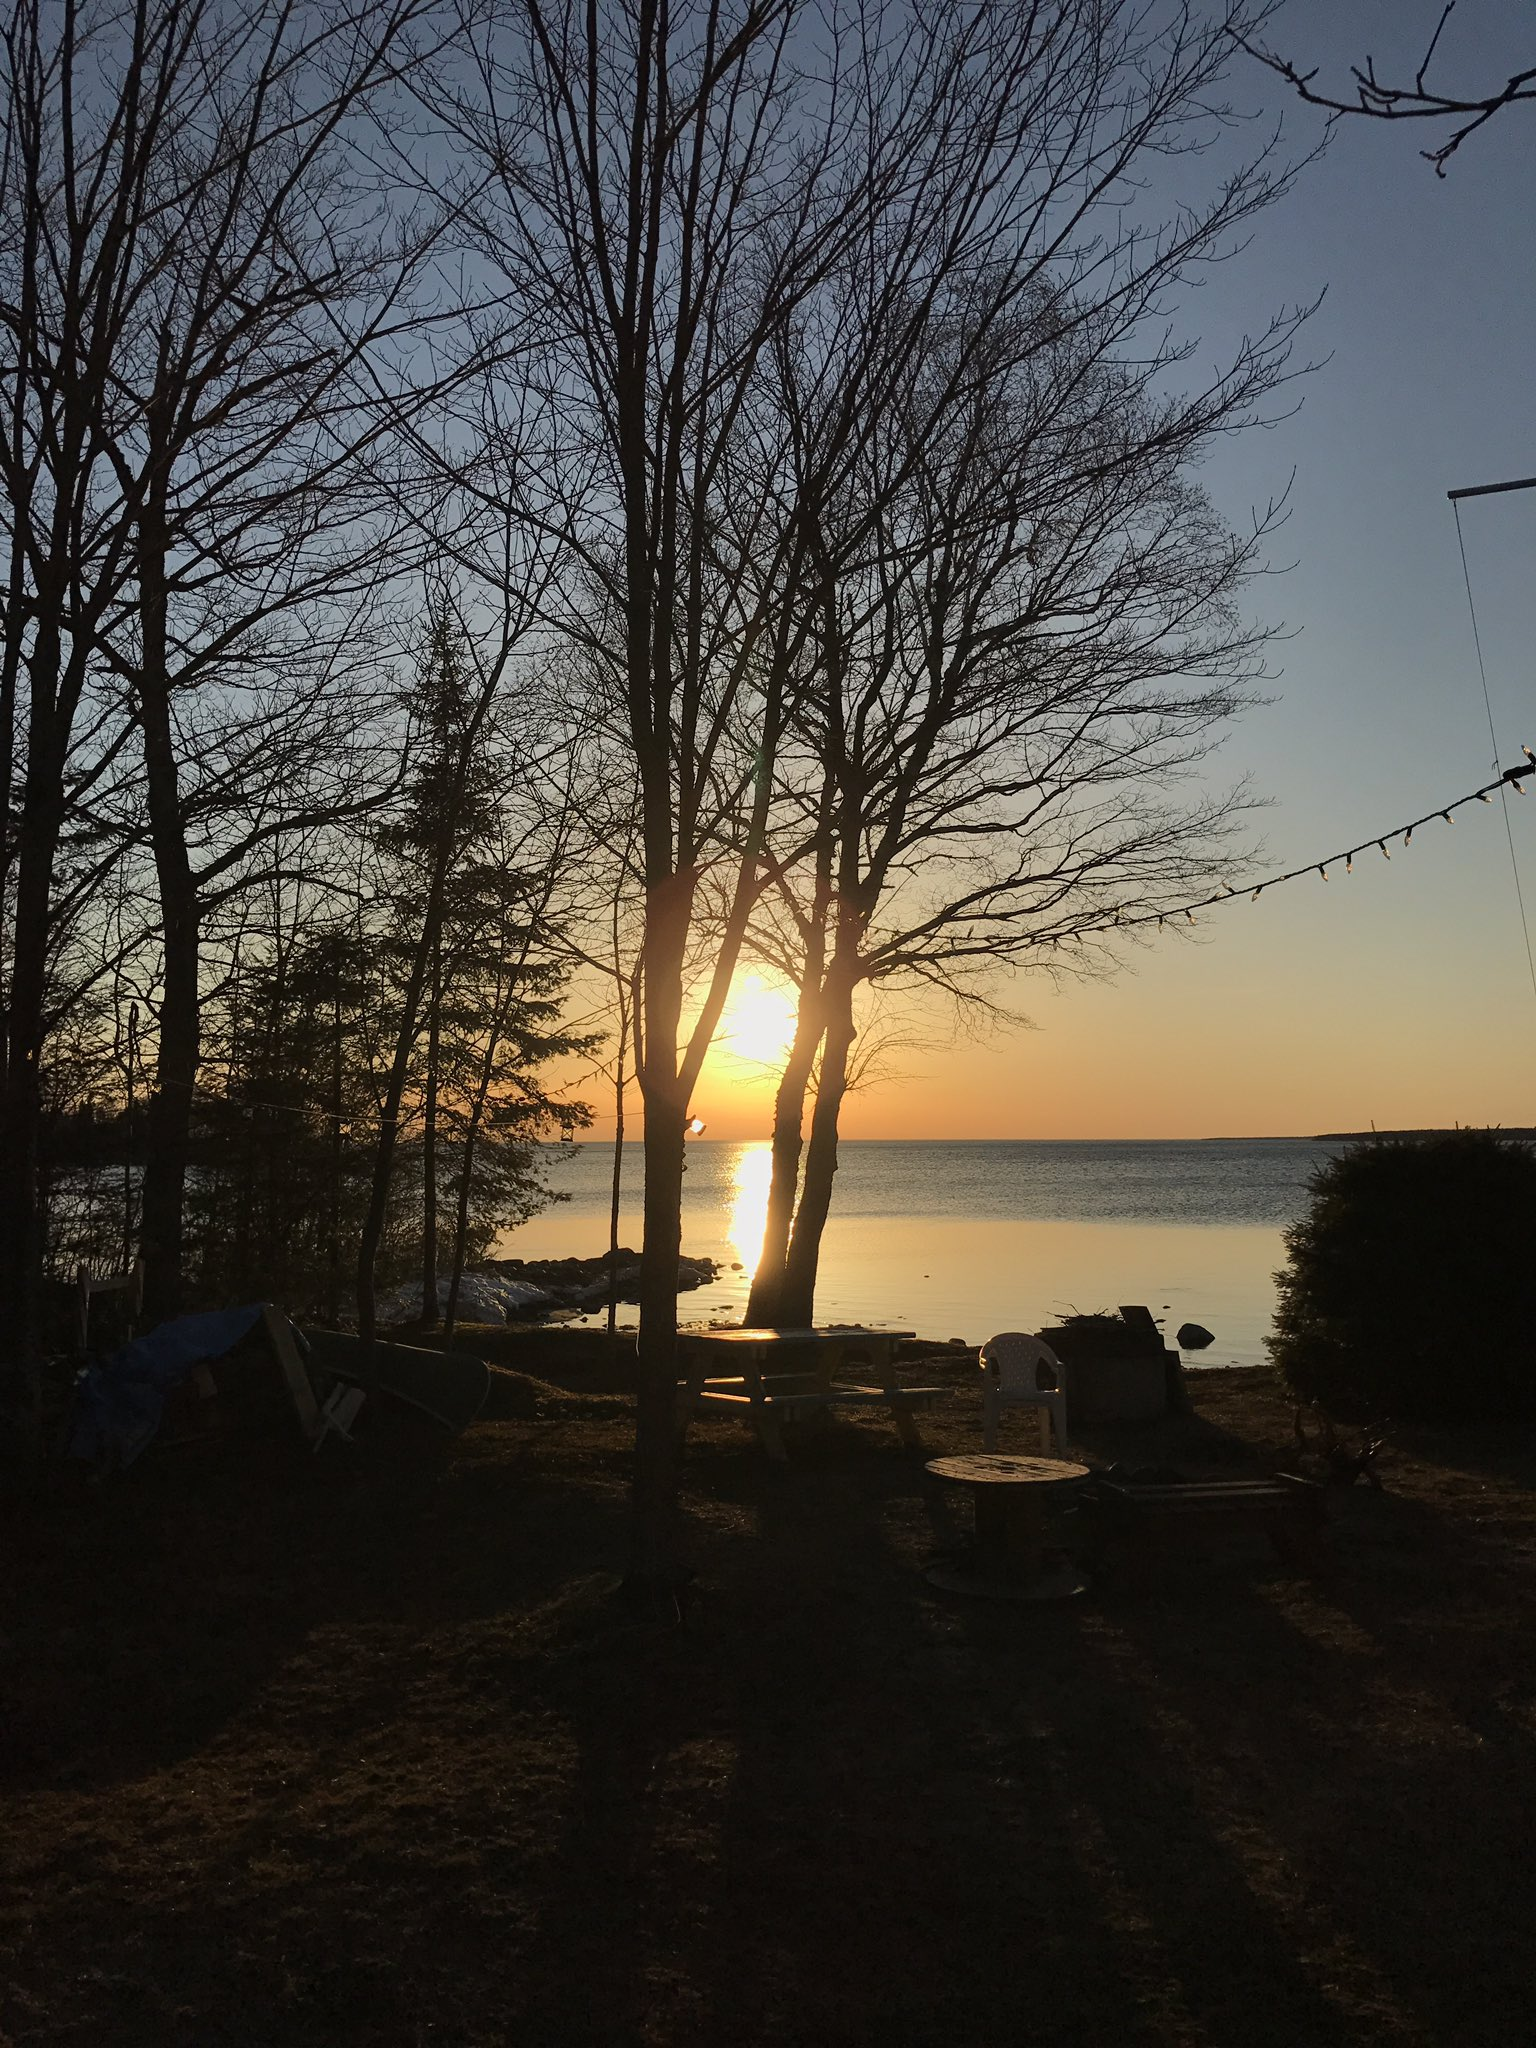 Hi! Carol from the Sault- my favorite landscape is any sunset at camp #myhappyplace #notabookstudy https://t.co/fwg1fmB2cW